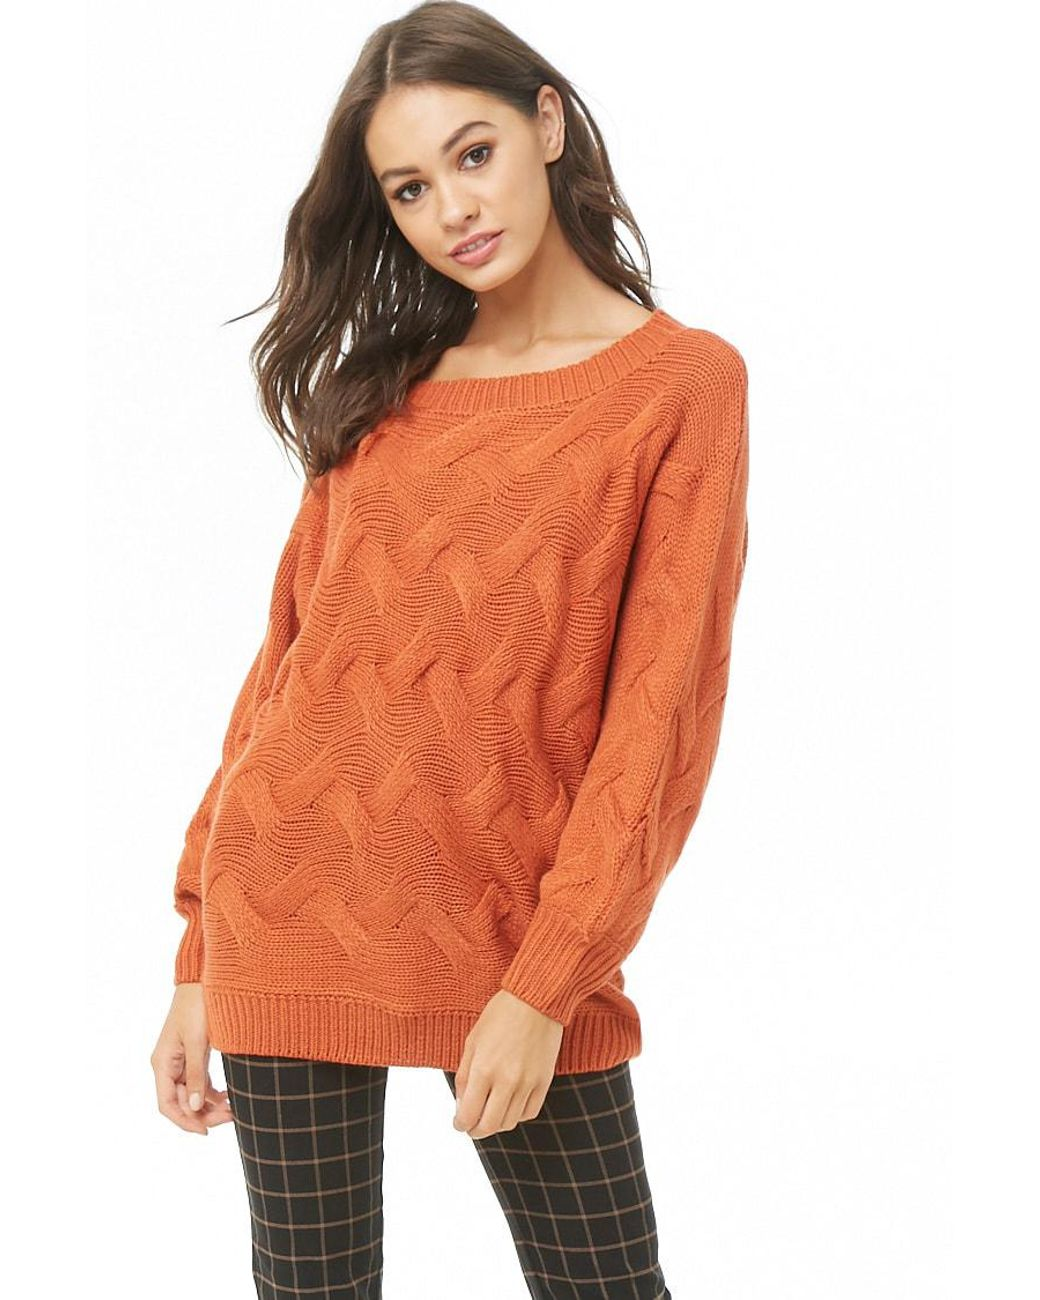 720dab17bf64c0 Long-Touch to Zoom. Long-Touch to Zoom. 1; 2. Forever 21 - Orange Cable  Knit Sweater ...